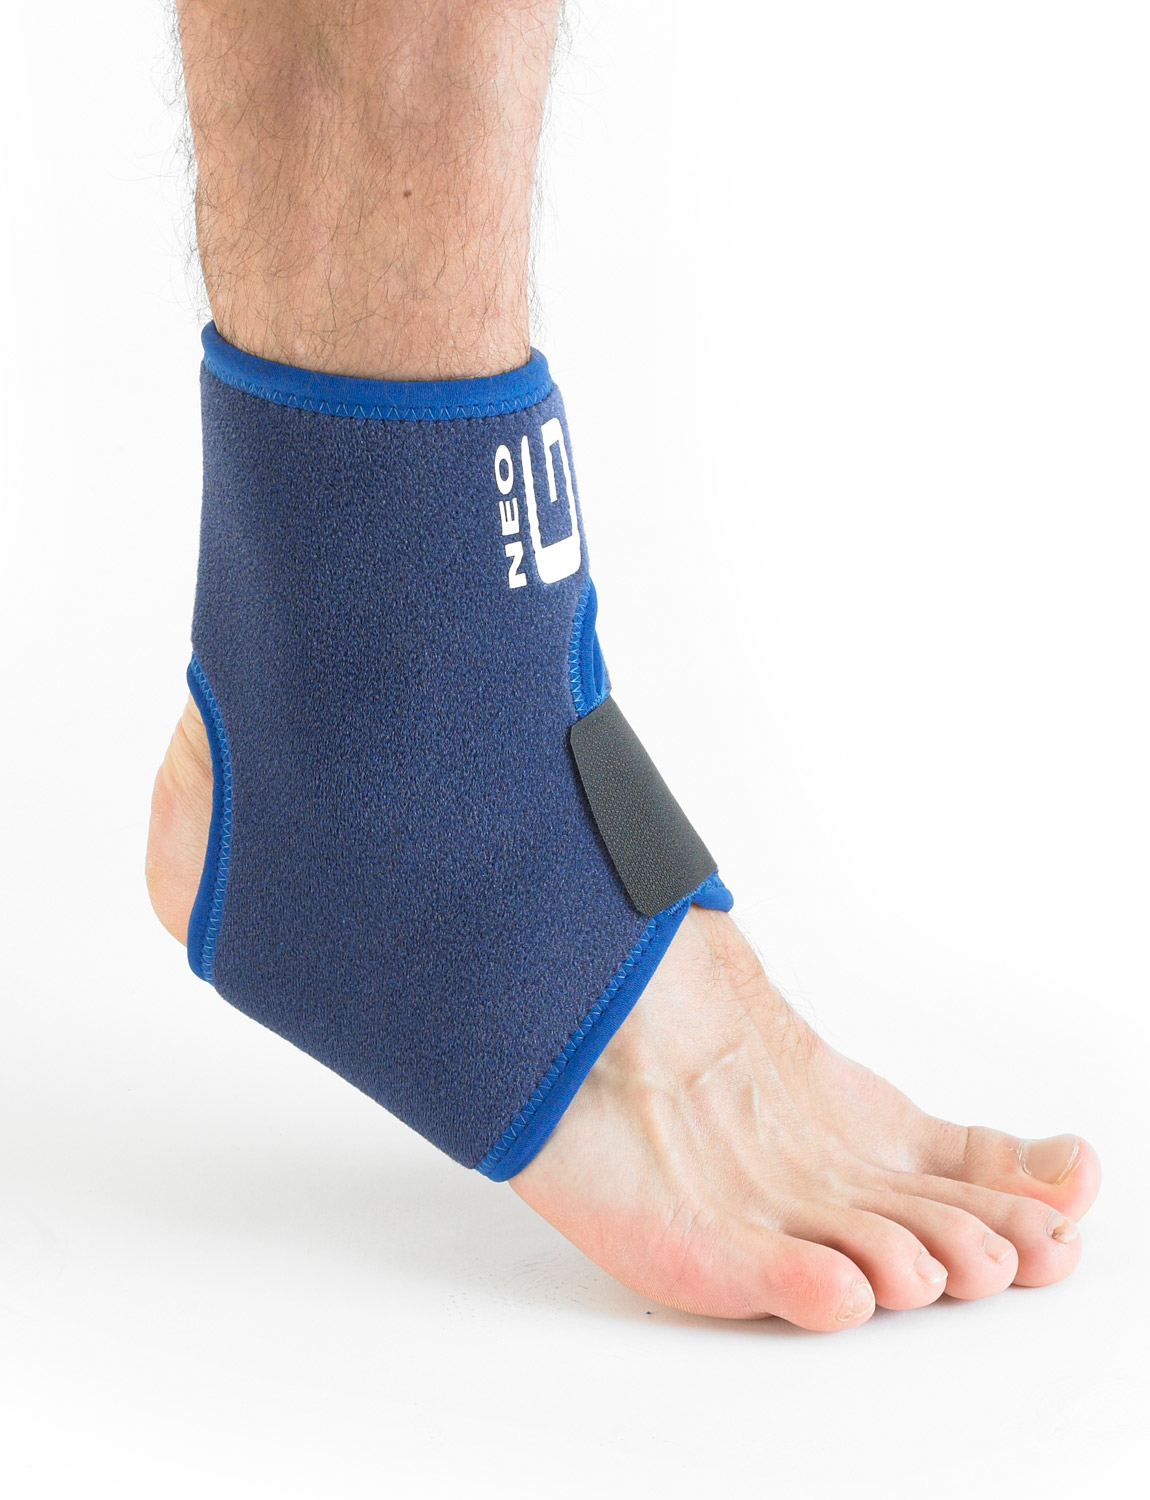 887V - ANKLE SUPPORT  Helps to reduce excessive planterflexion as well as inversion and eversion of the ankle all of which are associated with ligamentous injuries and instability of the ankle.